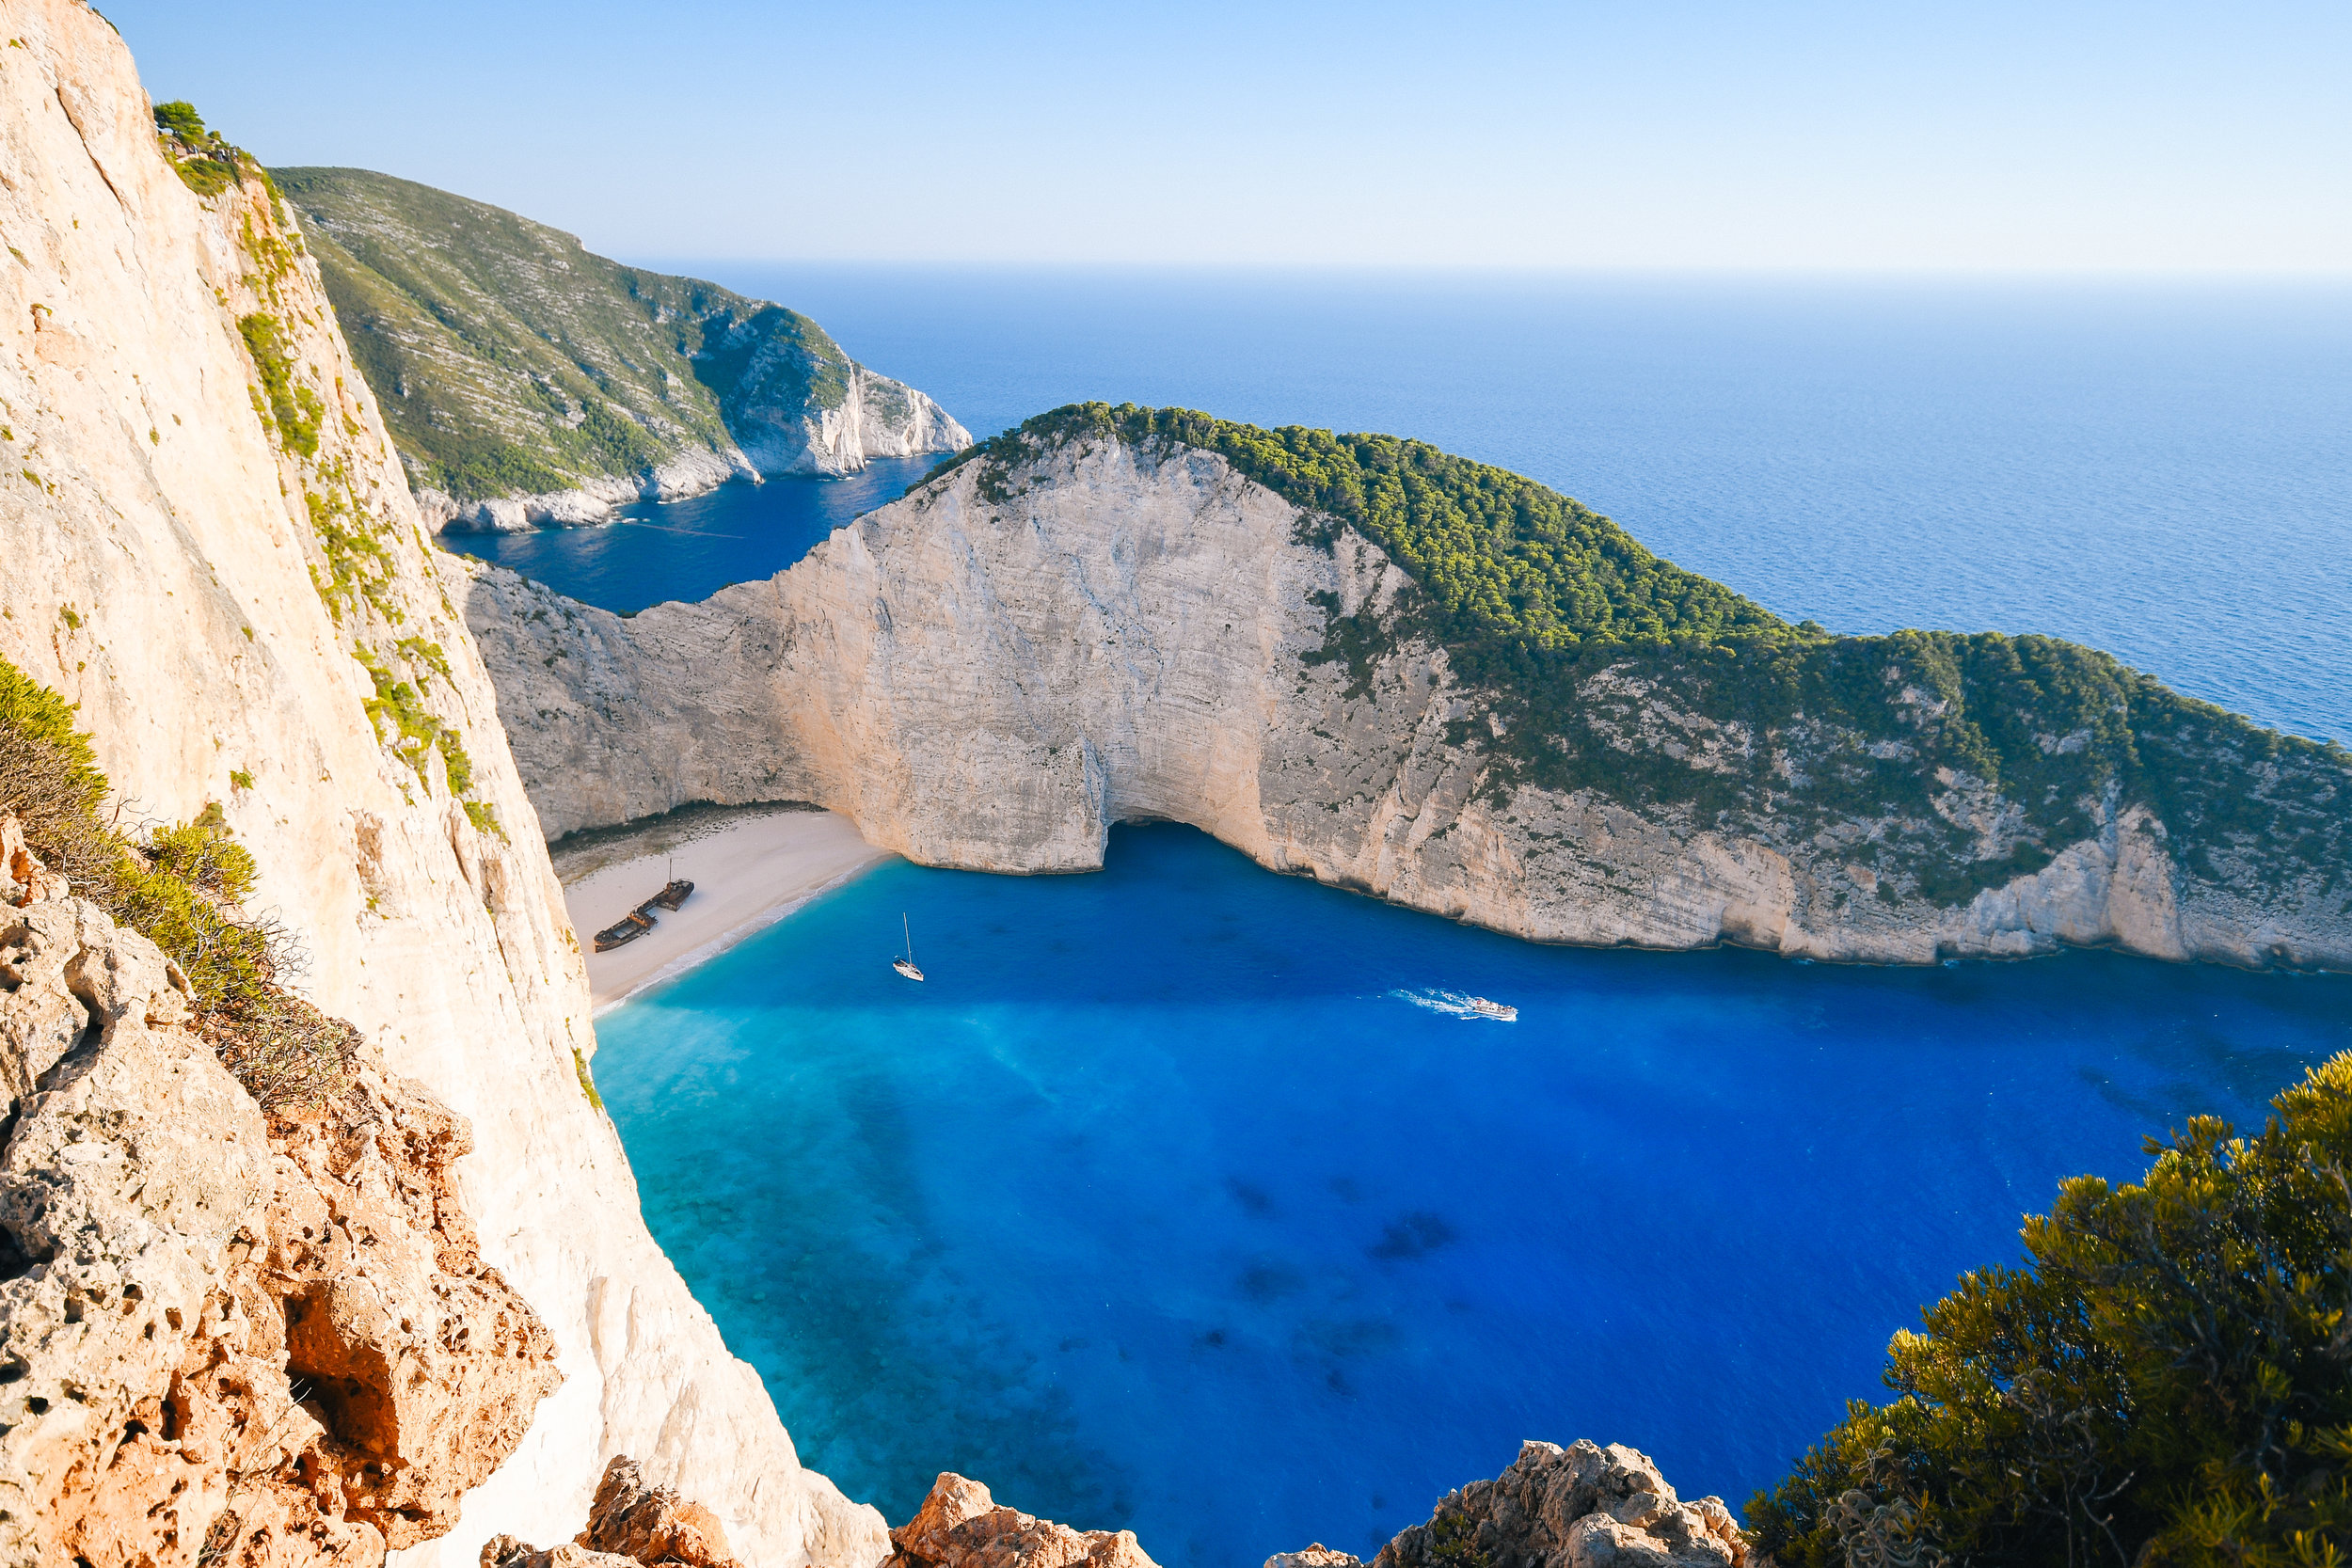 "Zakynthos - The ""flower of the east"" as the Italians would call it. Green embraced by blue. A seaside village where white beaches, high stone cliffs, and turquoise waters transport you to immortality."